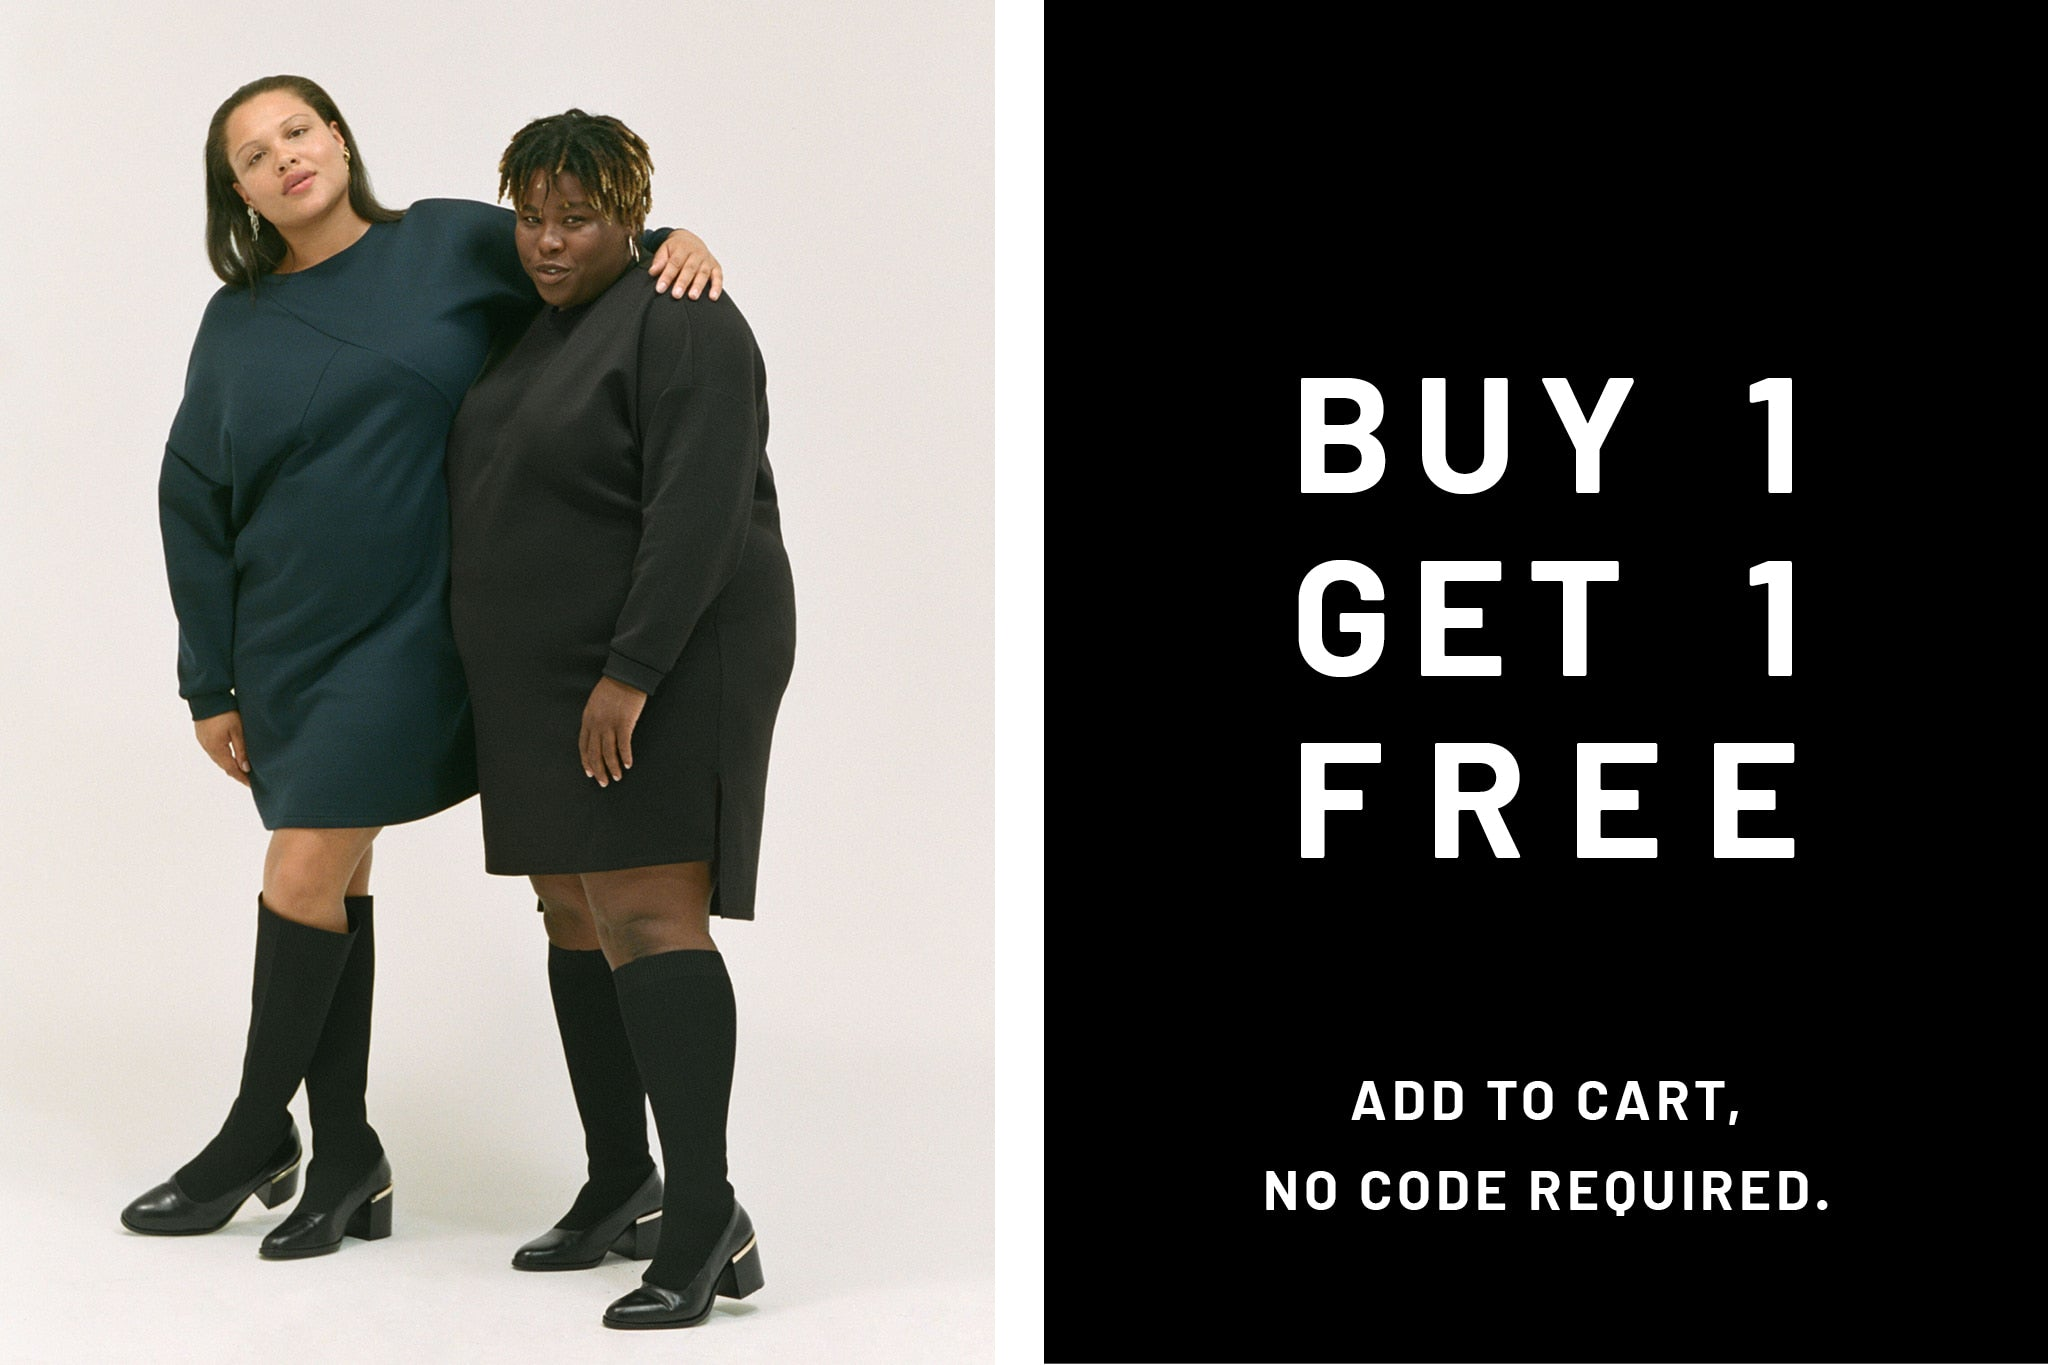 Black Friday Weekend: Buy 1 & Get 1 Free